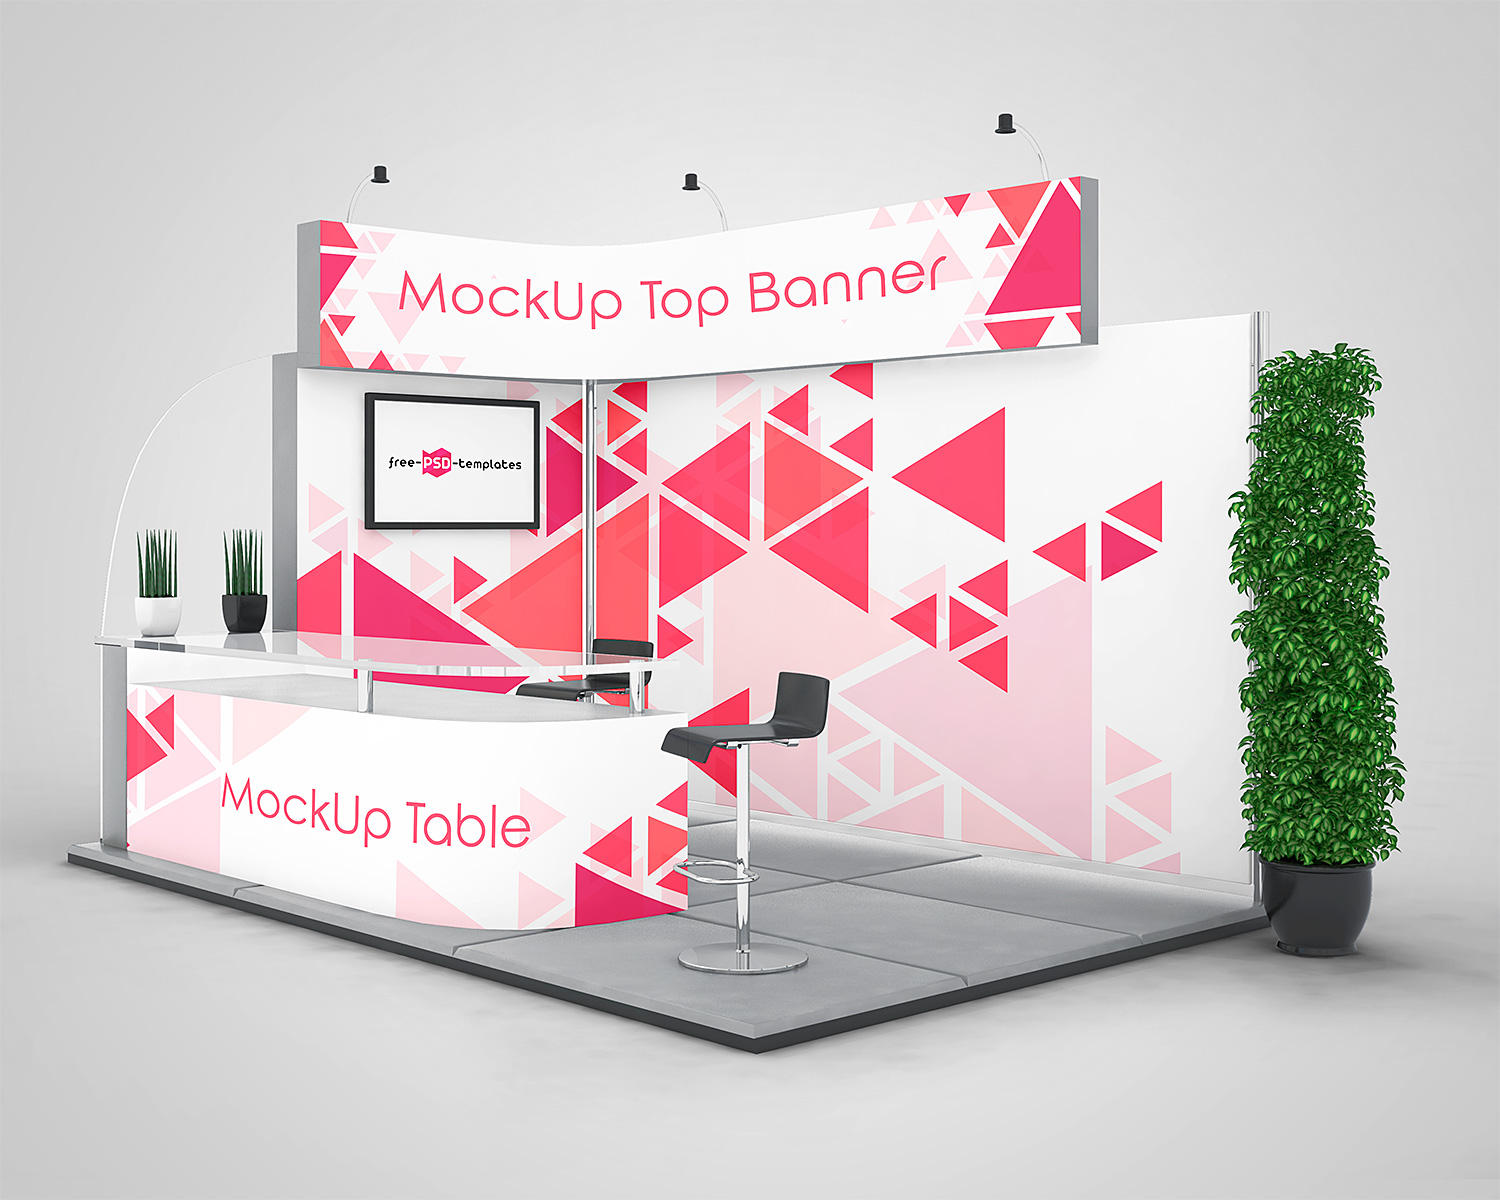 Exhibition Stand Mockup Free Psd : Exhibition stand mock ups free in psd mockup